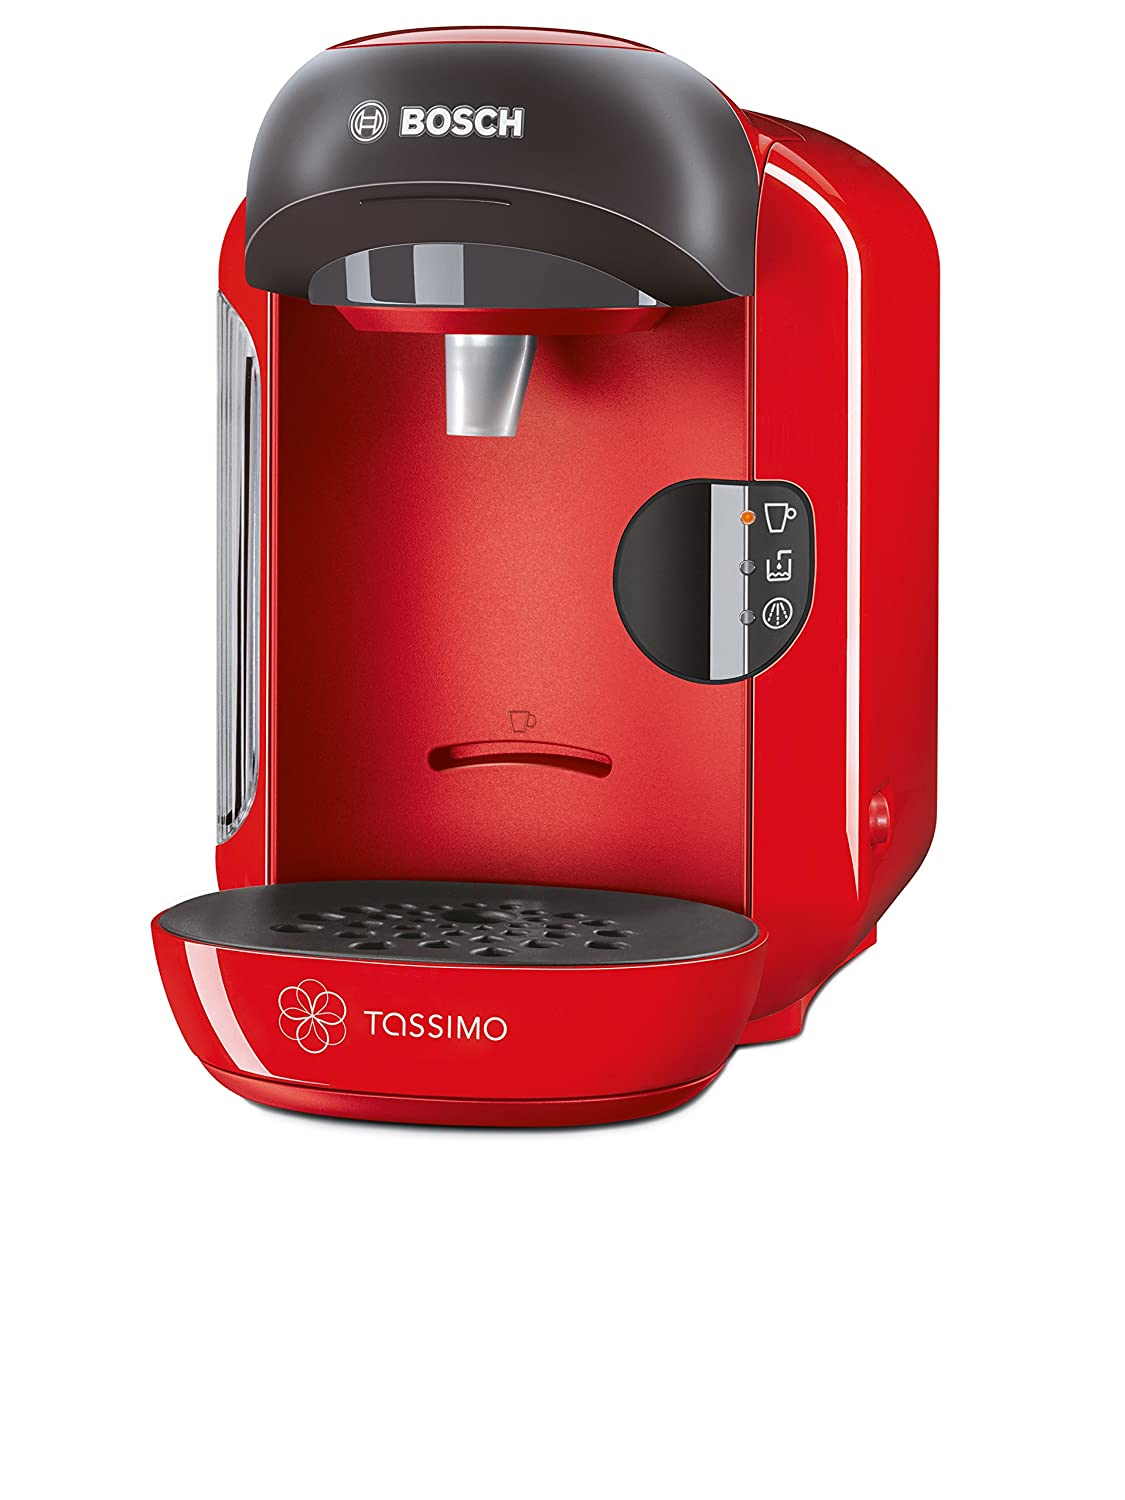 Bosch Tassimo Vivy T12 Coffee Hot Chocolate Tea Pods Cappuccino Machine Drinks eBay